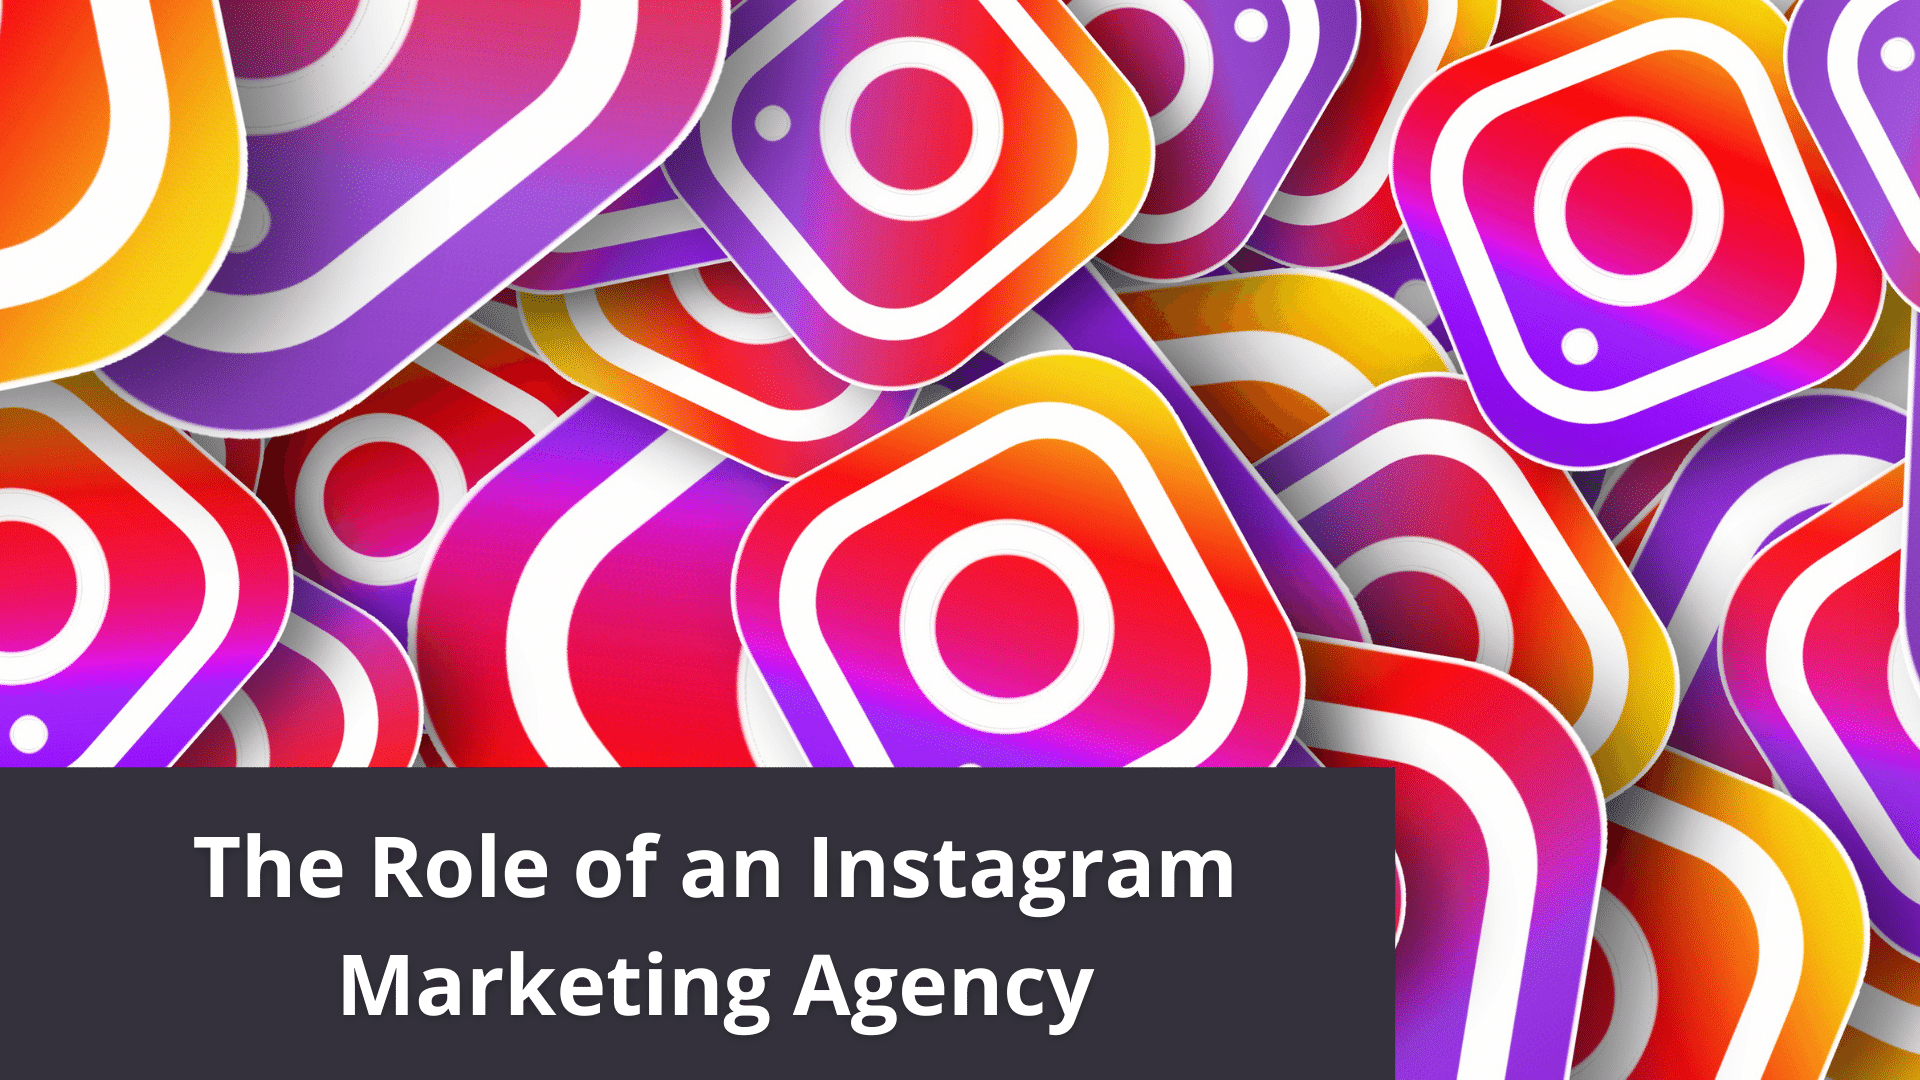 The Role of an Instagram Marketing Agency 41